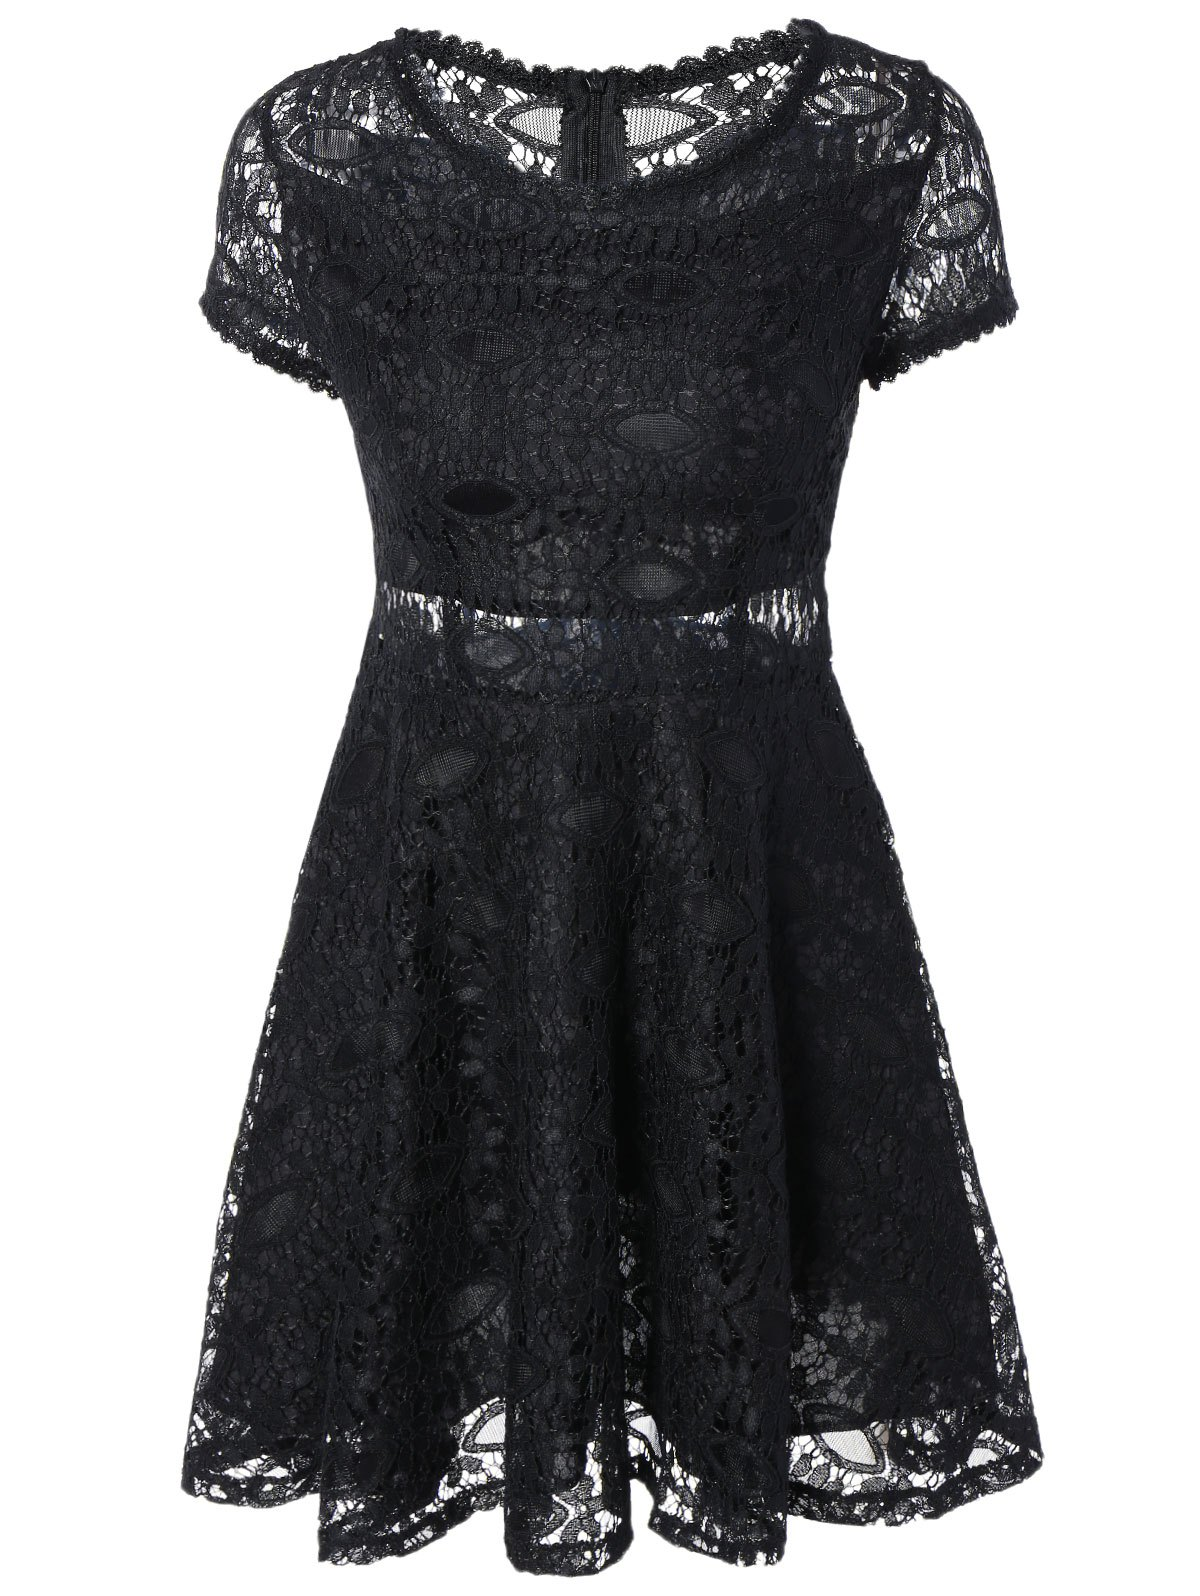 Alluring See-Through Lace Dress - BLACK XL